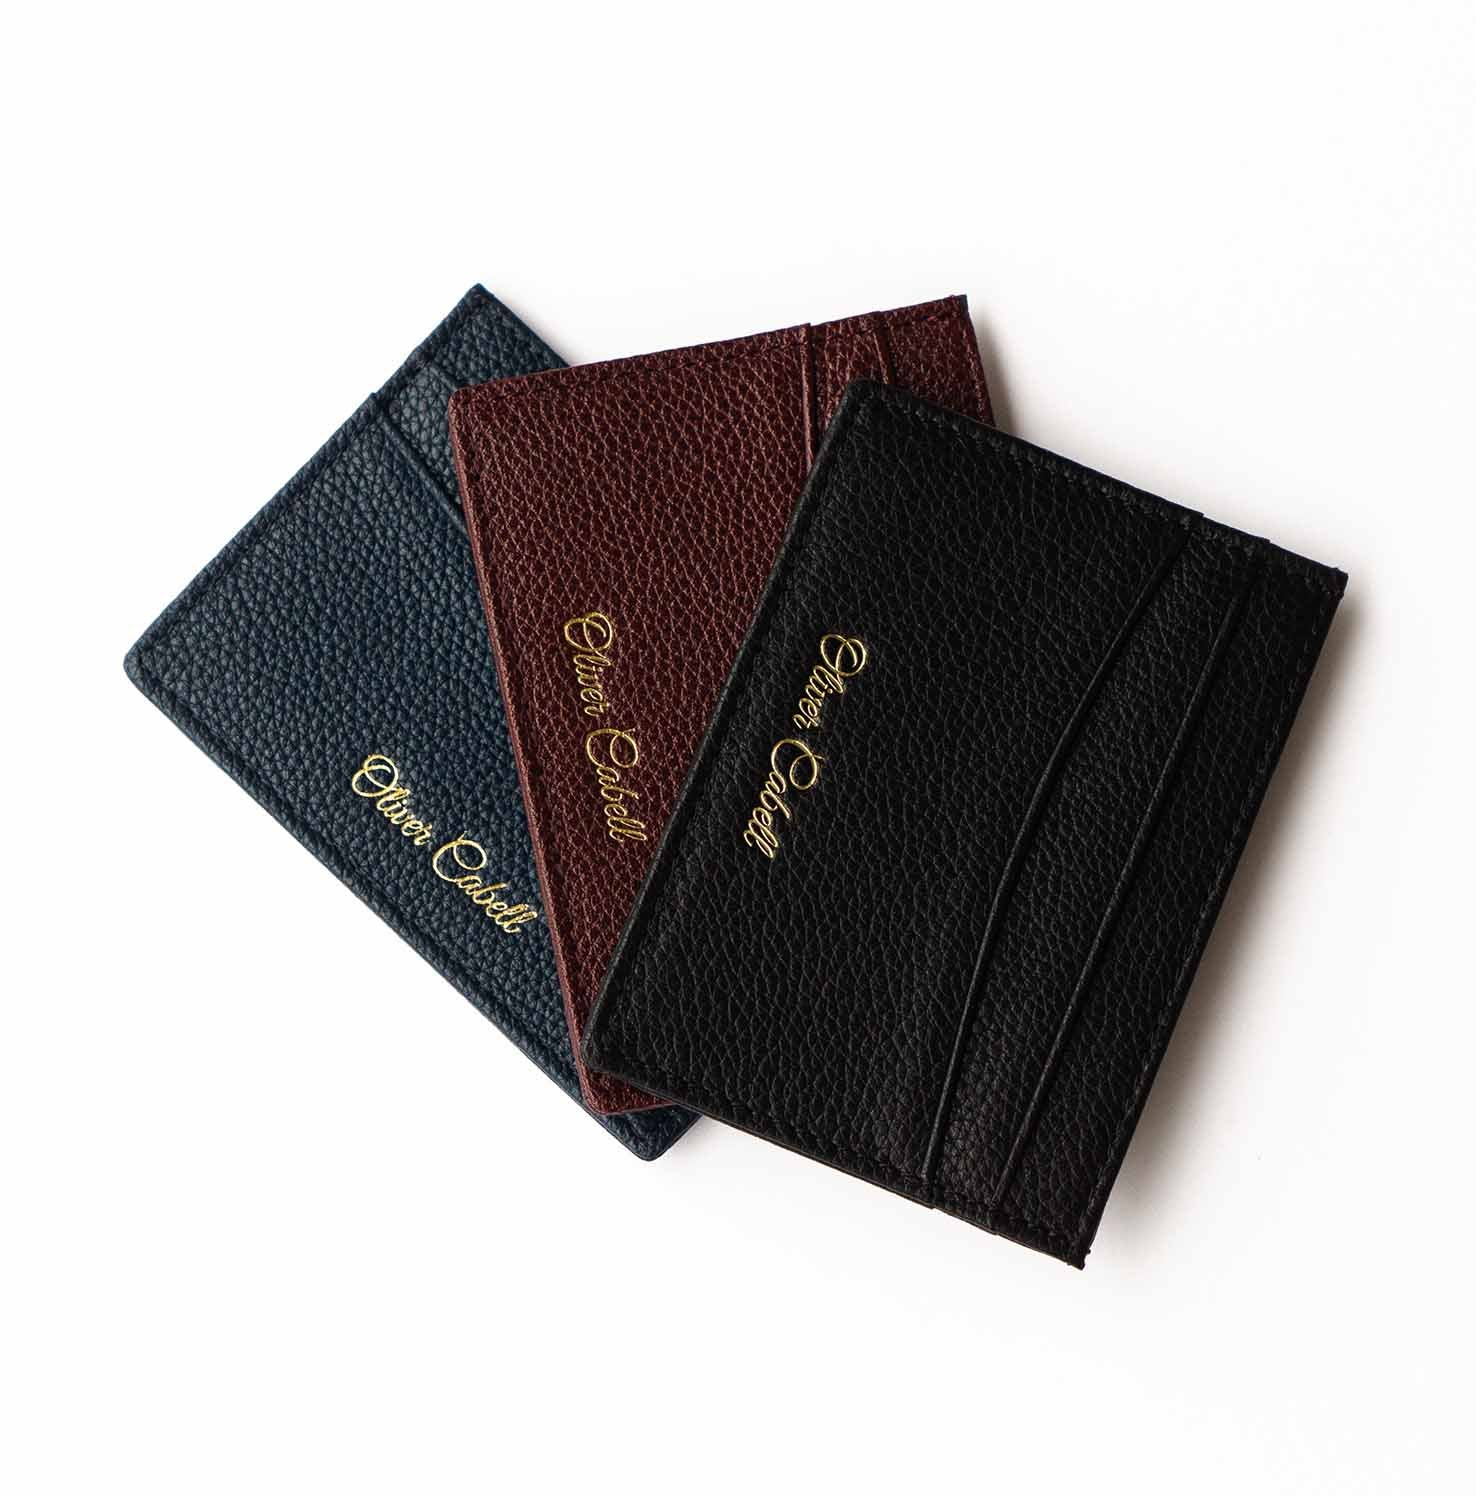 OC Leather Card Holder | Black 3